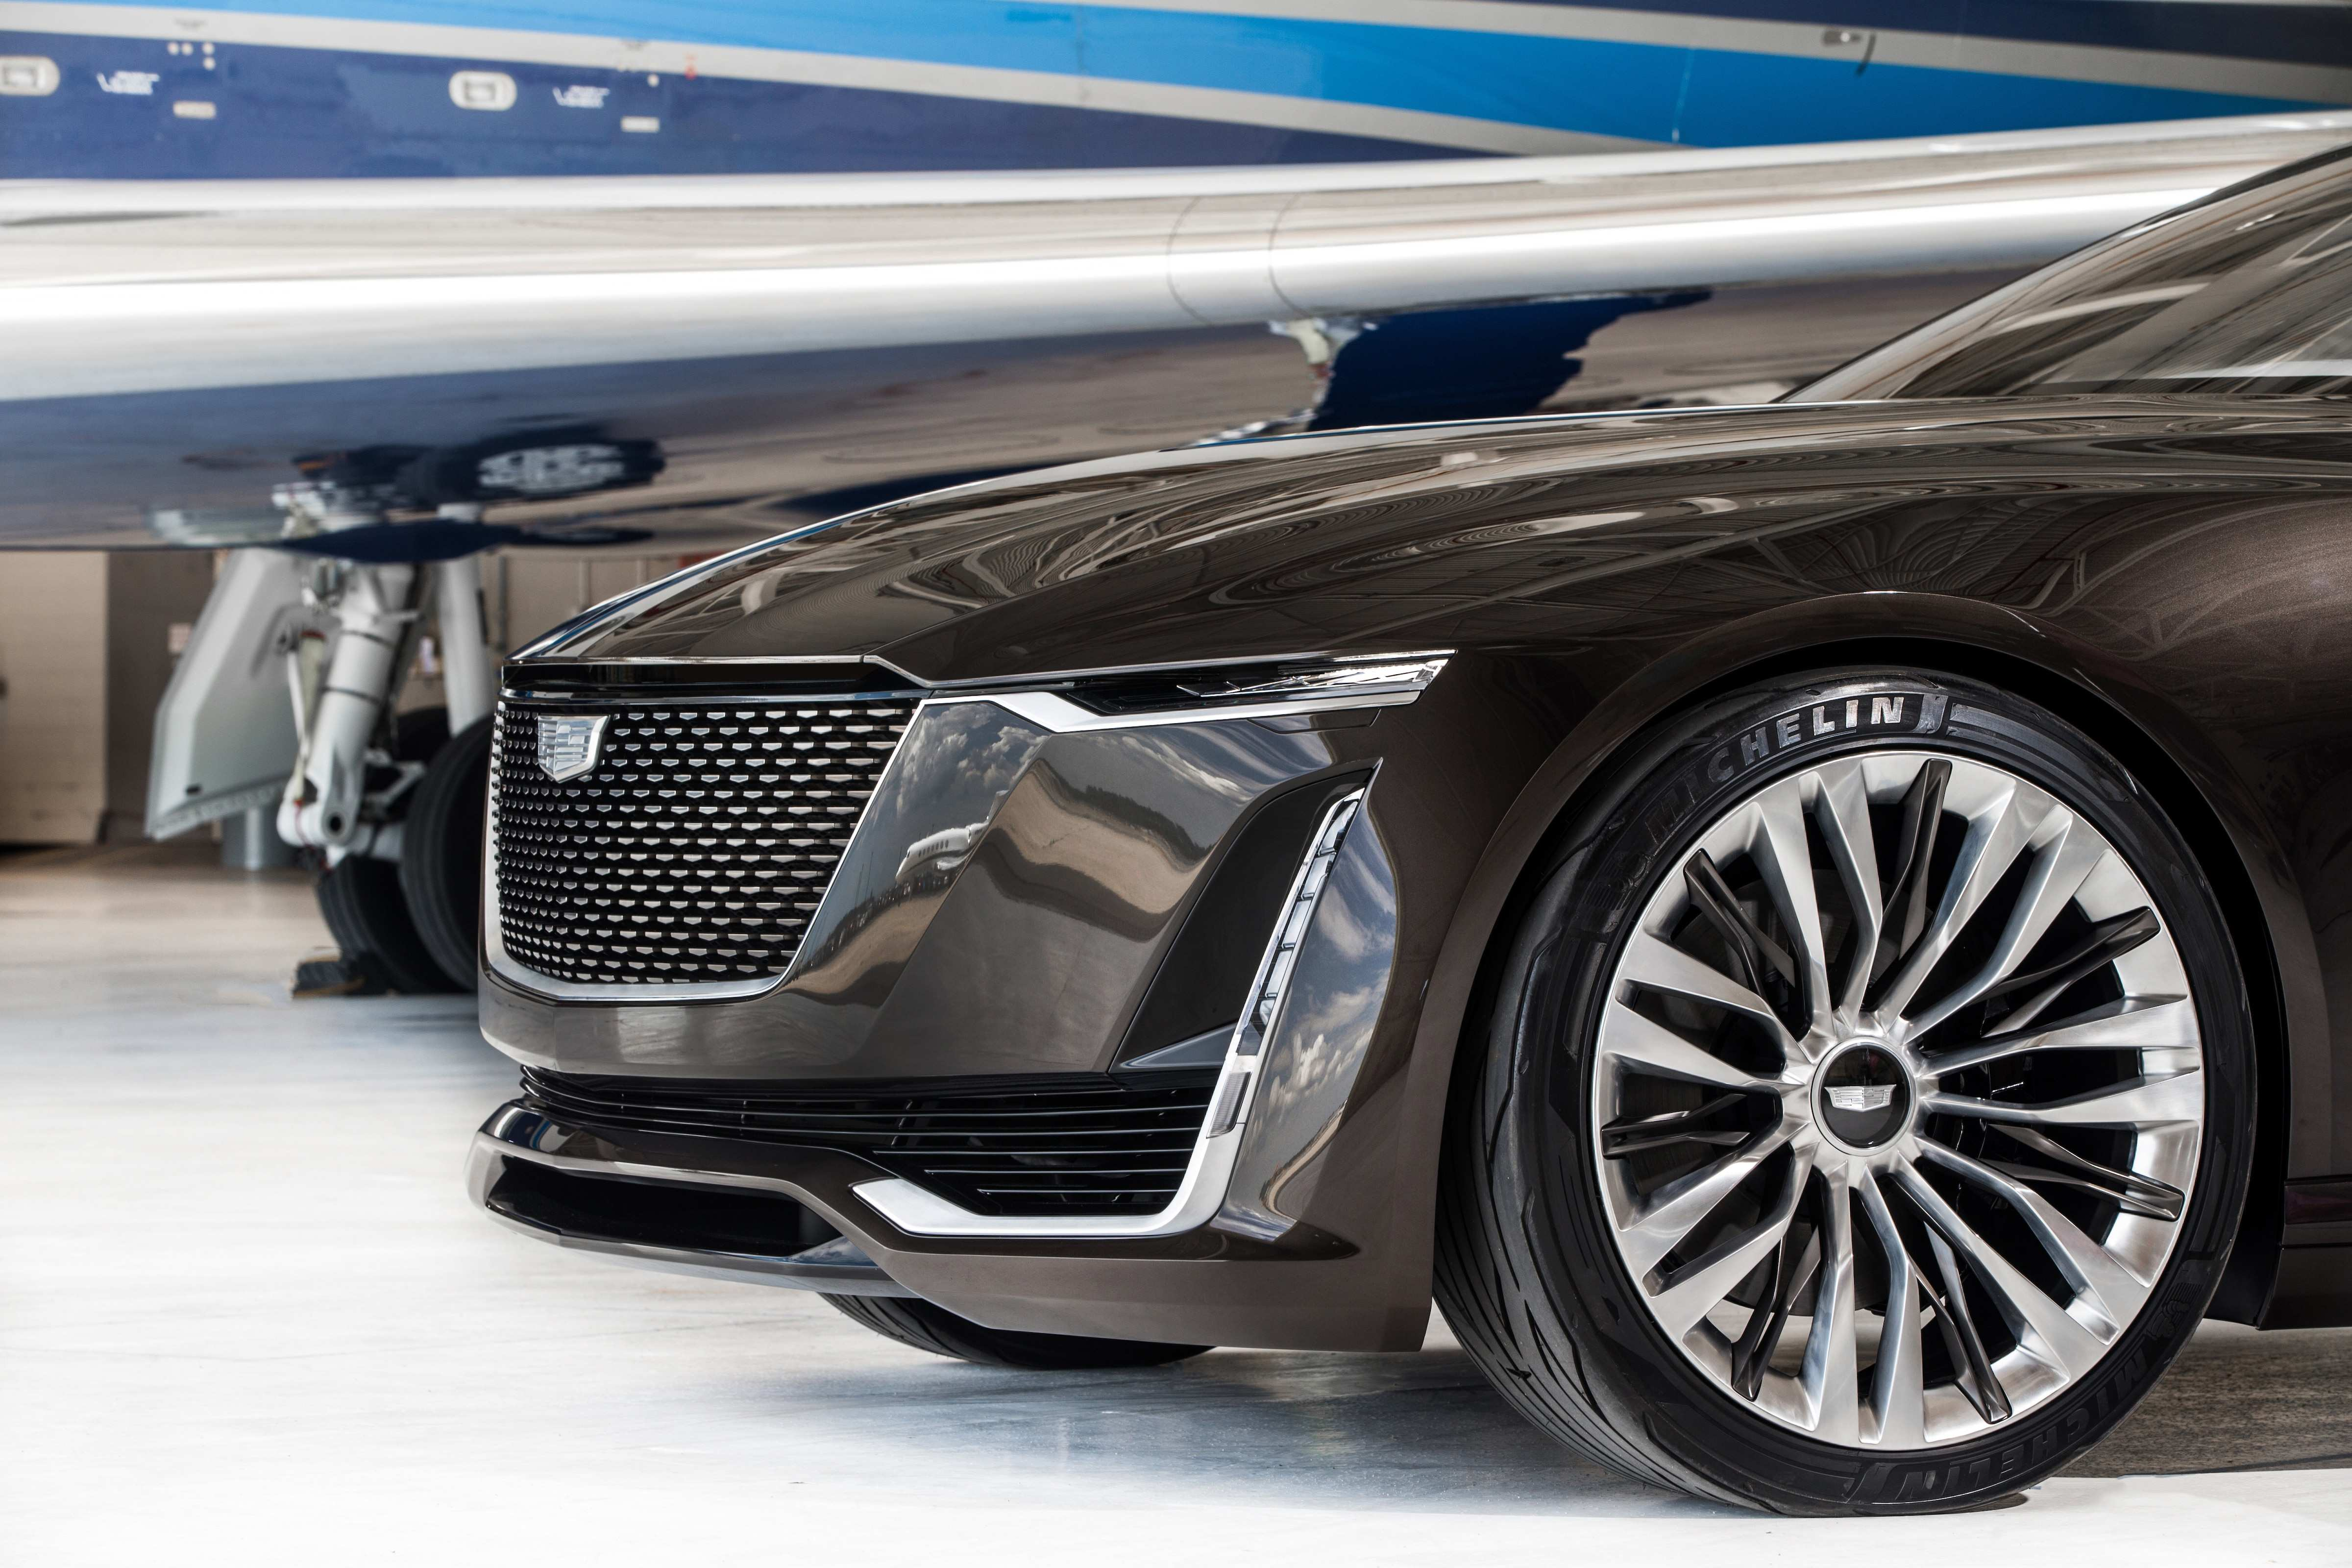 61 The Best 2020 Cadillac Escalade Ext Exterior And Interior